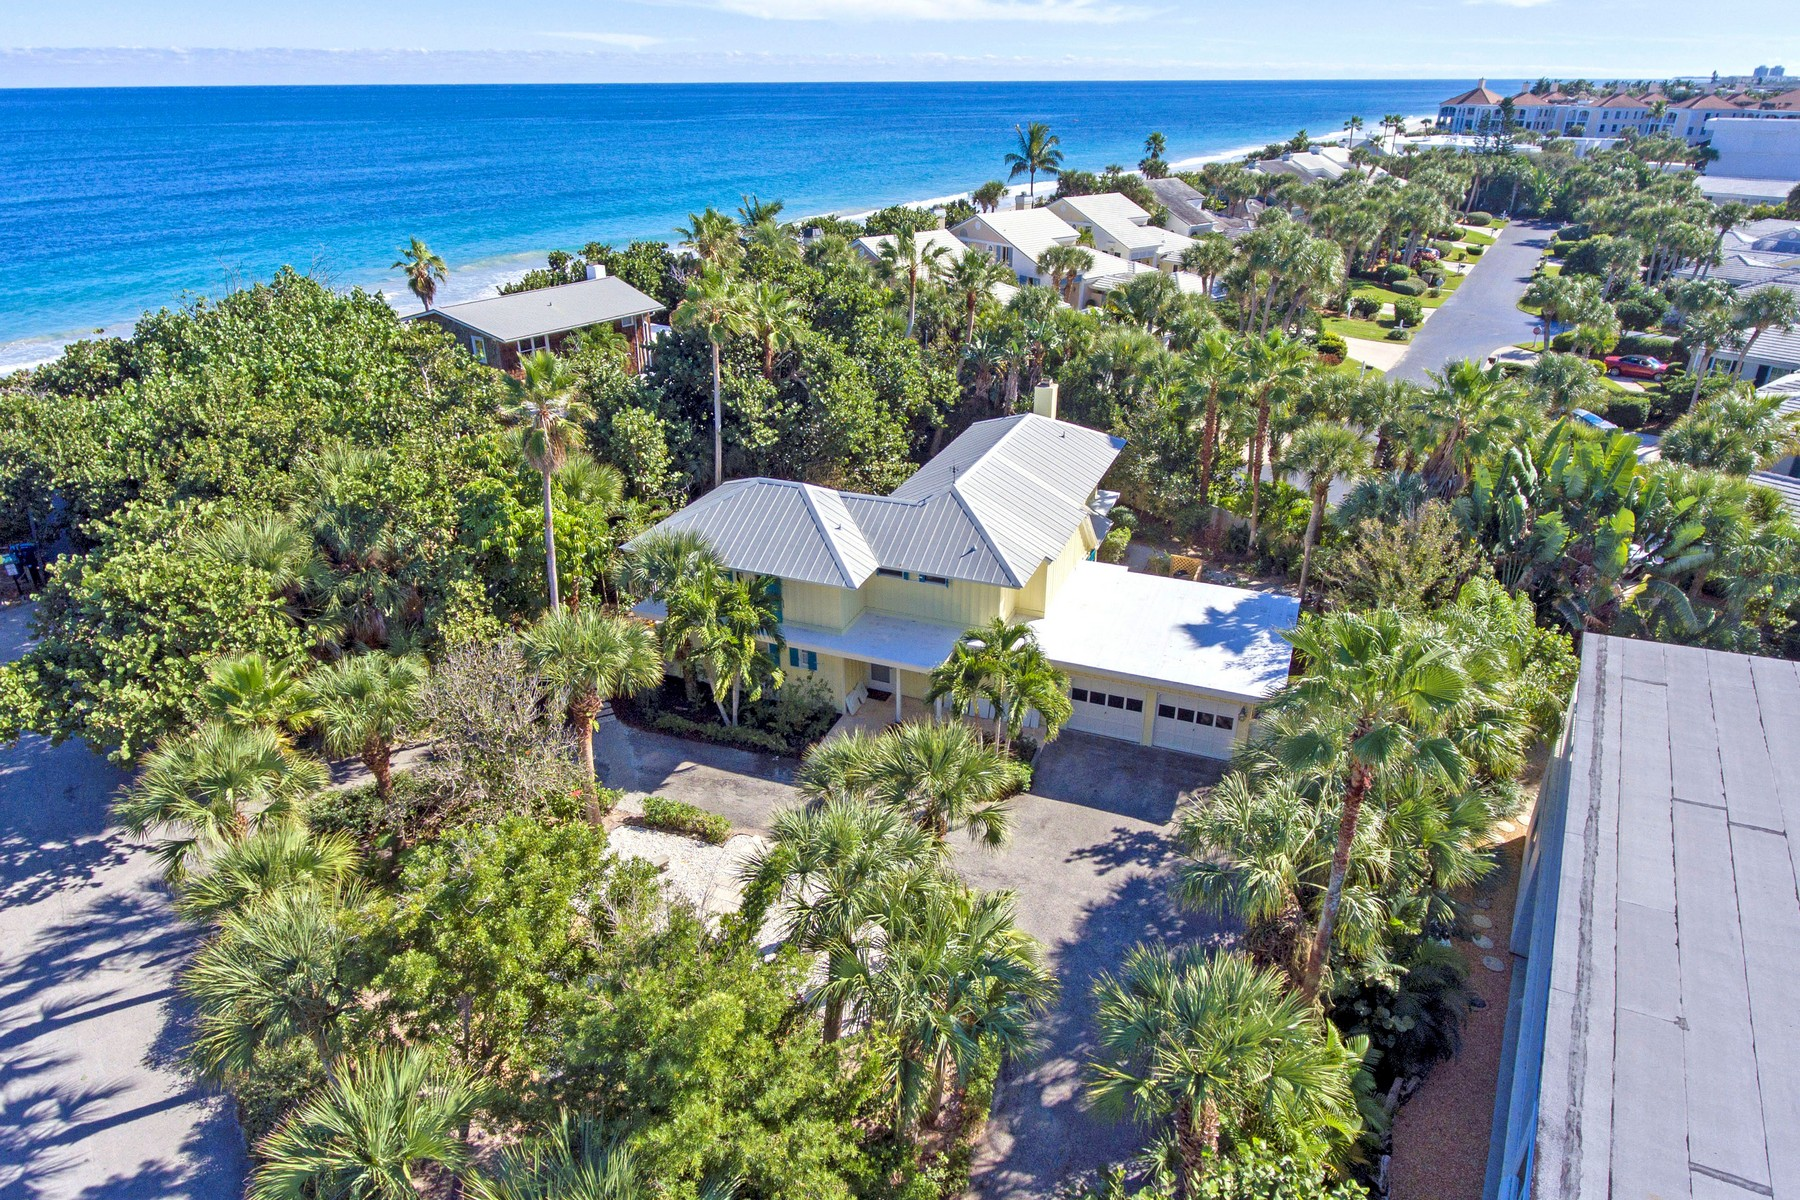 Property for Sale at Beach House 975 Beachcomber Lane Vero Beach, Florida 32963 United States